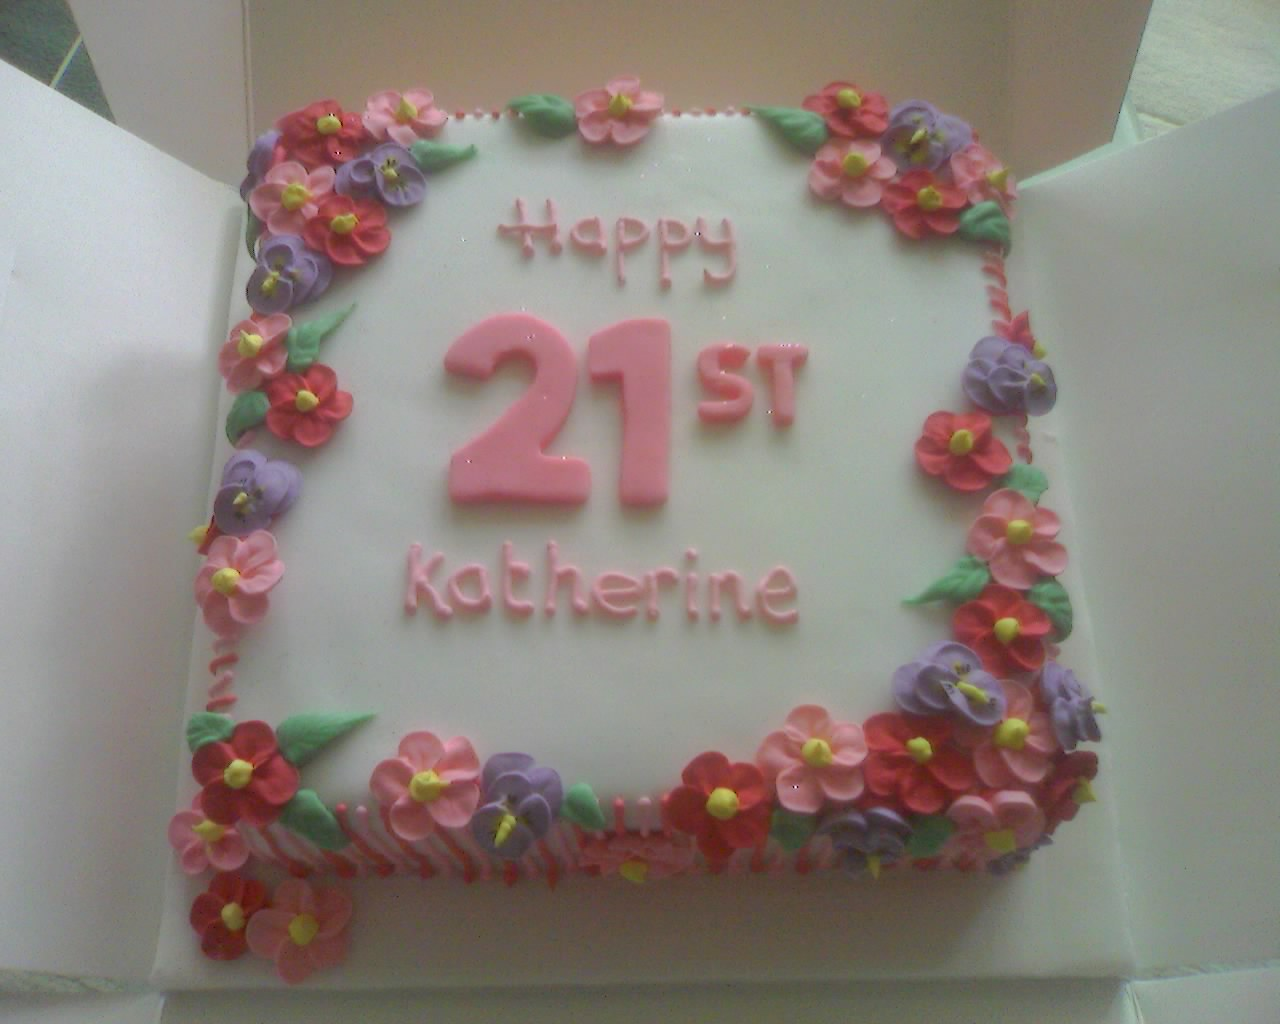 Cake Decorating Icing For Flowers : Royal Icing flowers Cooking, Cakes & Children